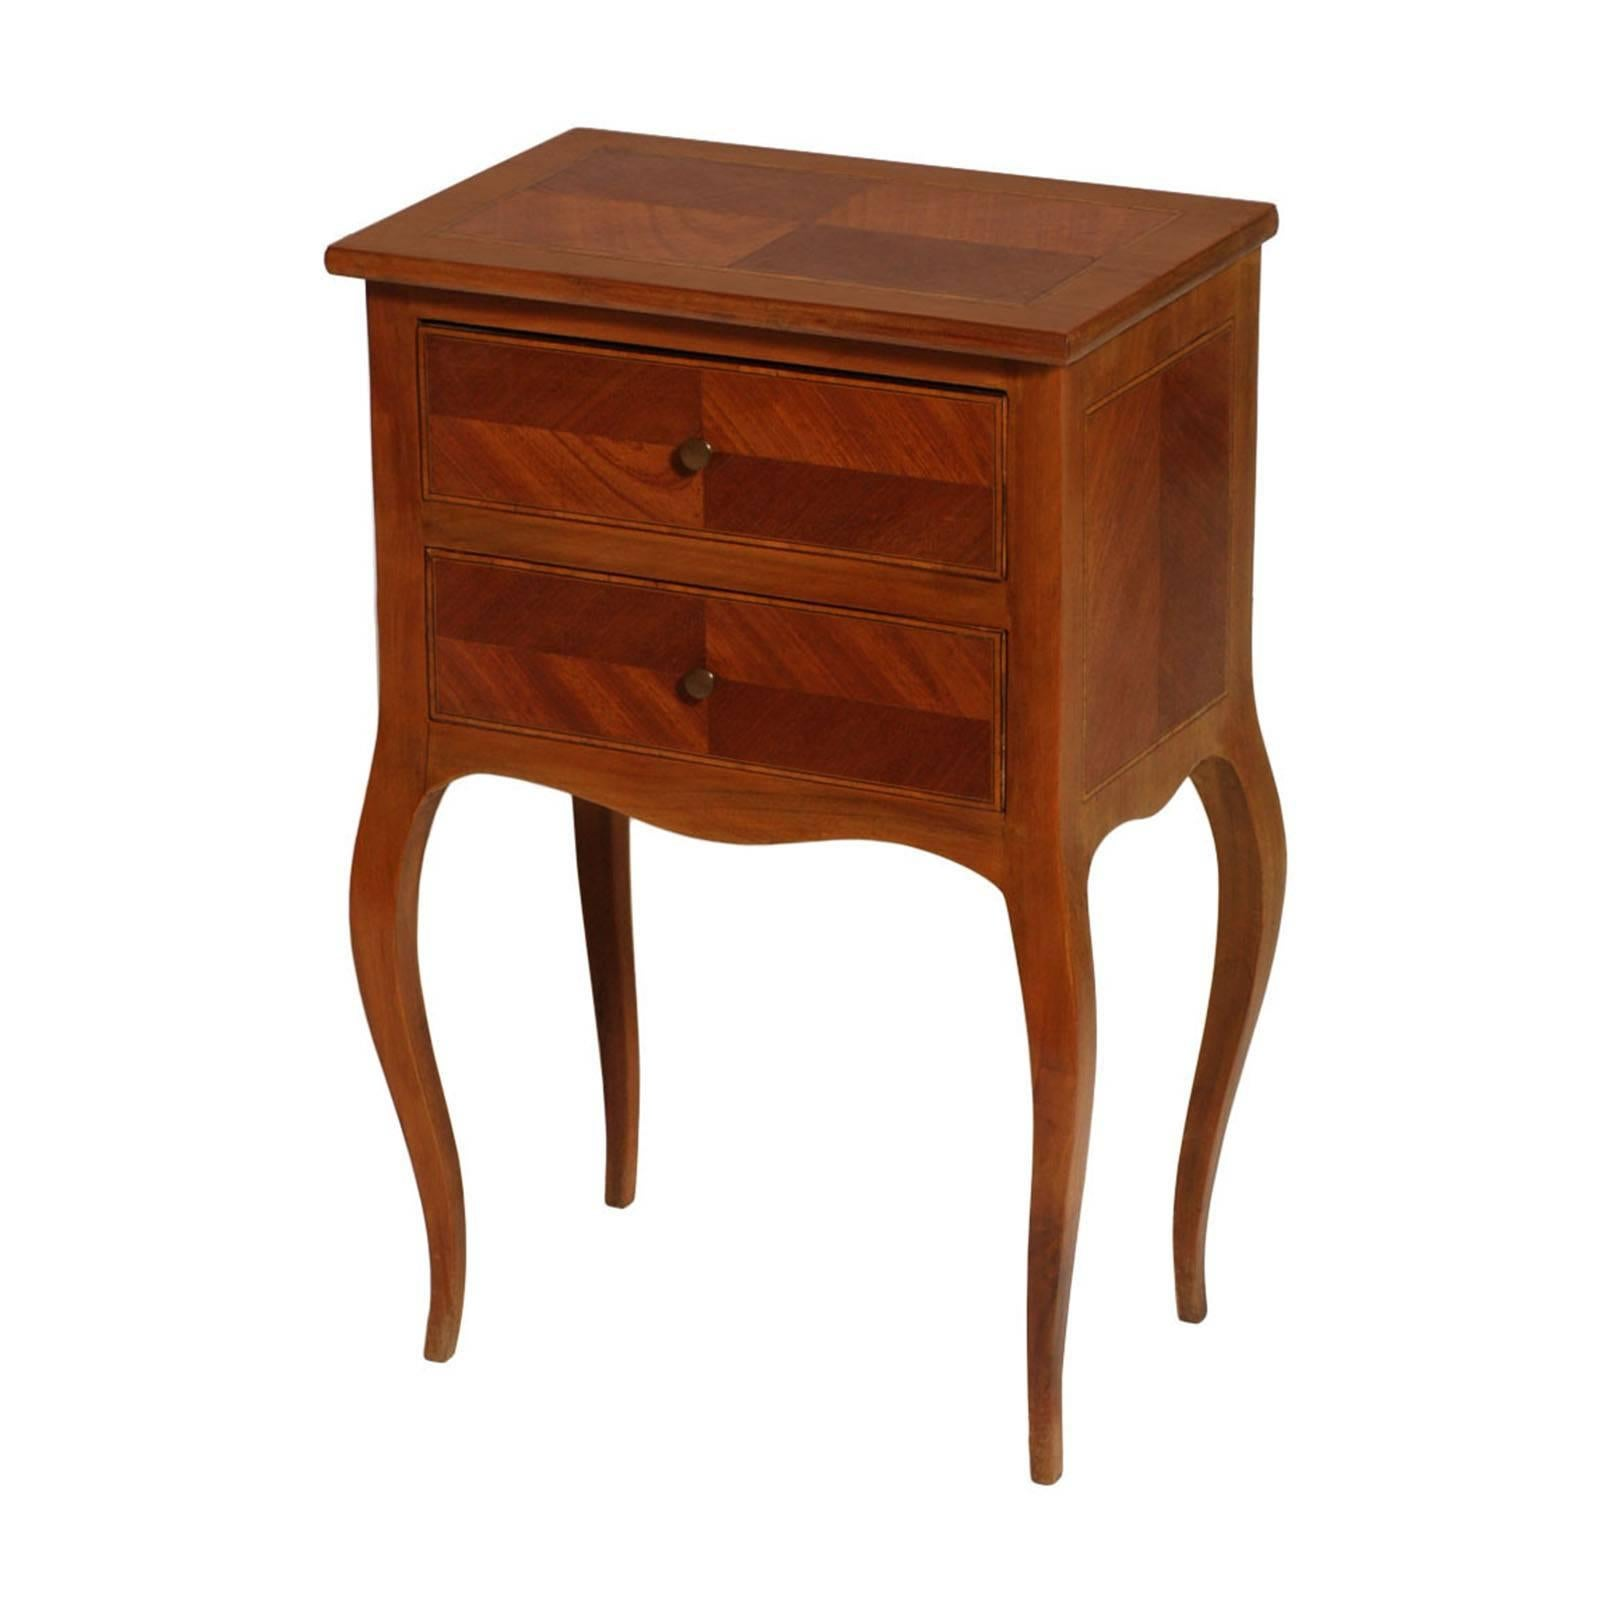 Bovolone 1920s Side Cabinet, Nightstand, in Walnut and Walnut Inlay with Maple